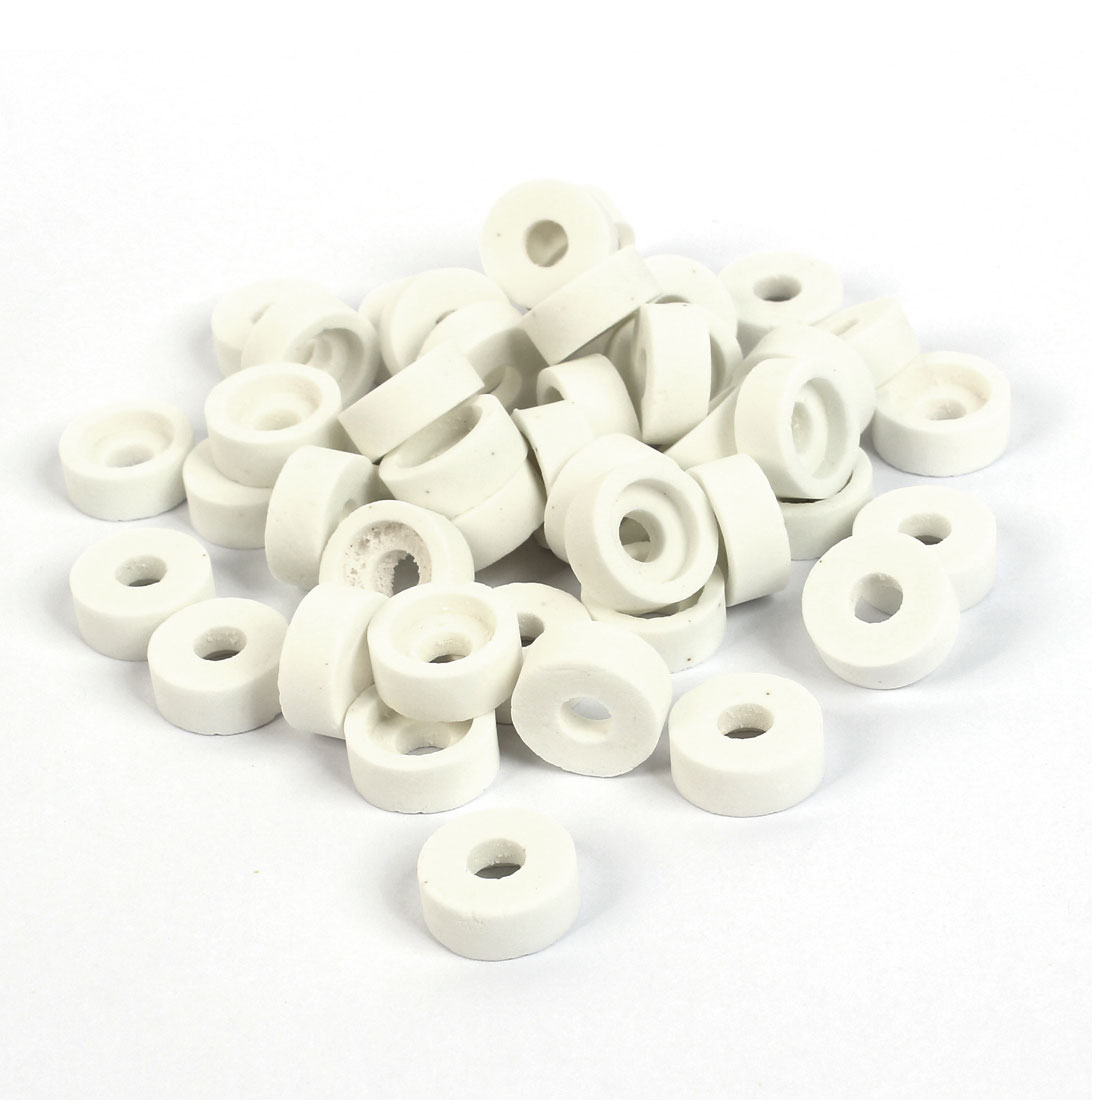 White 15mm OD 6mm Height Round Ceramic Insulation Protection Tube 50 Pcs